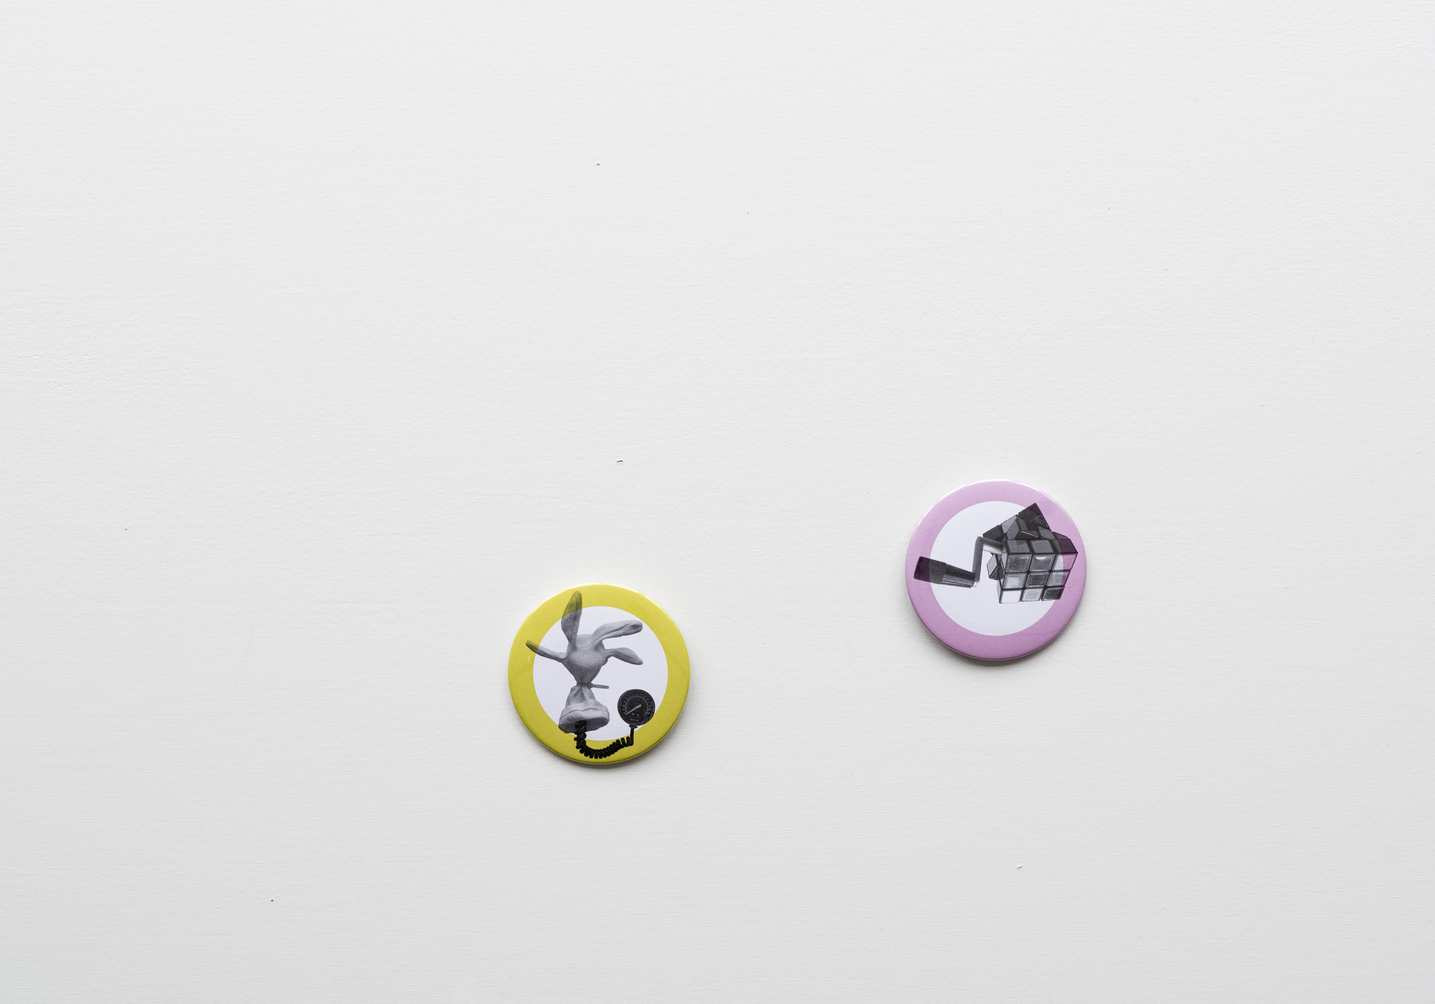 kost-buttons-1-1435x1004px